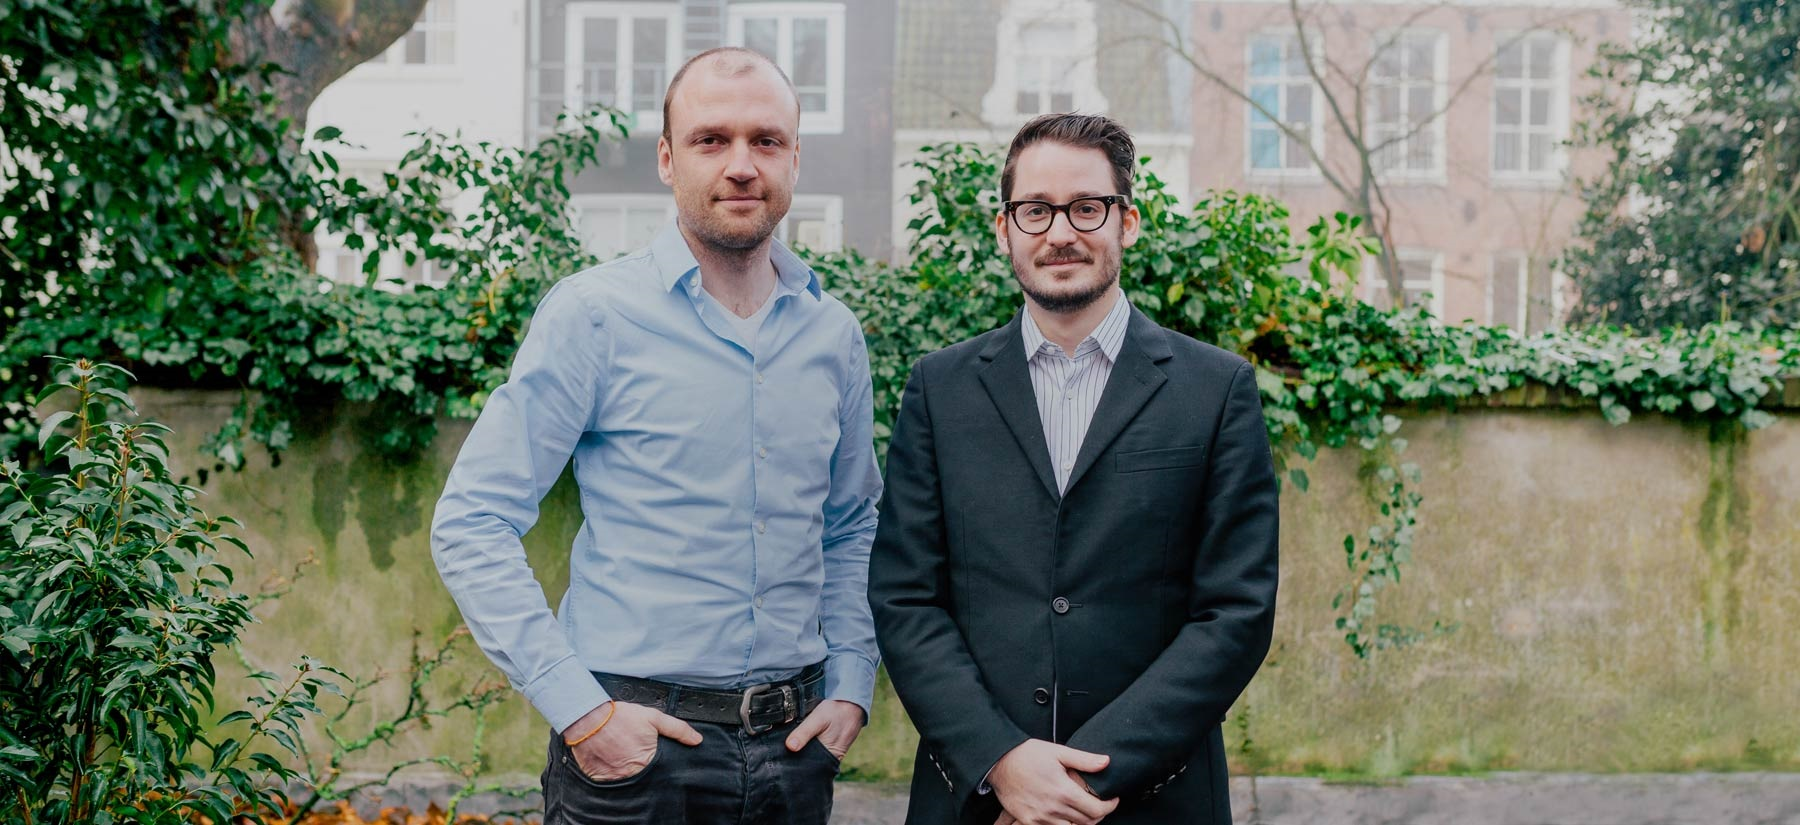 Cyber-security startup EclecticIQ secures €5,5 million from Inkef and KPN